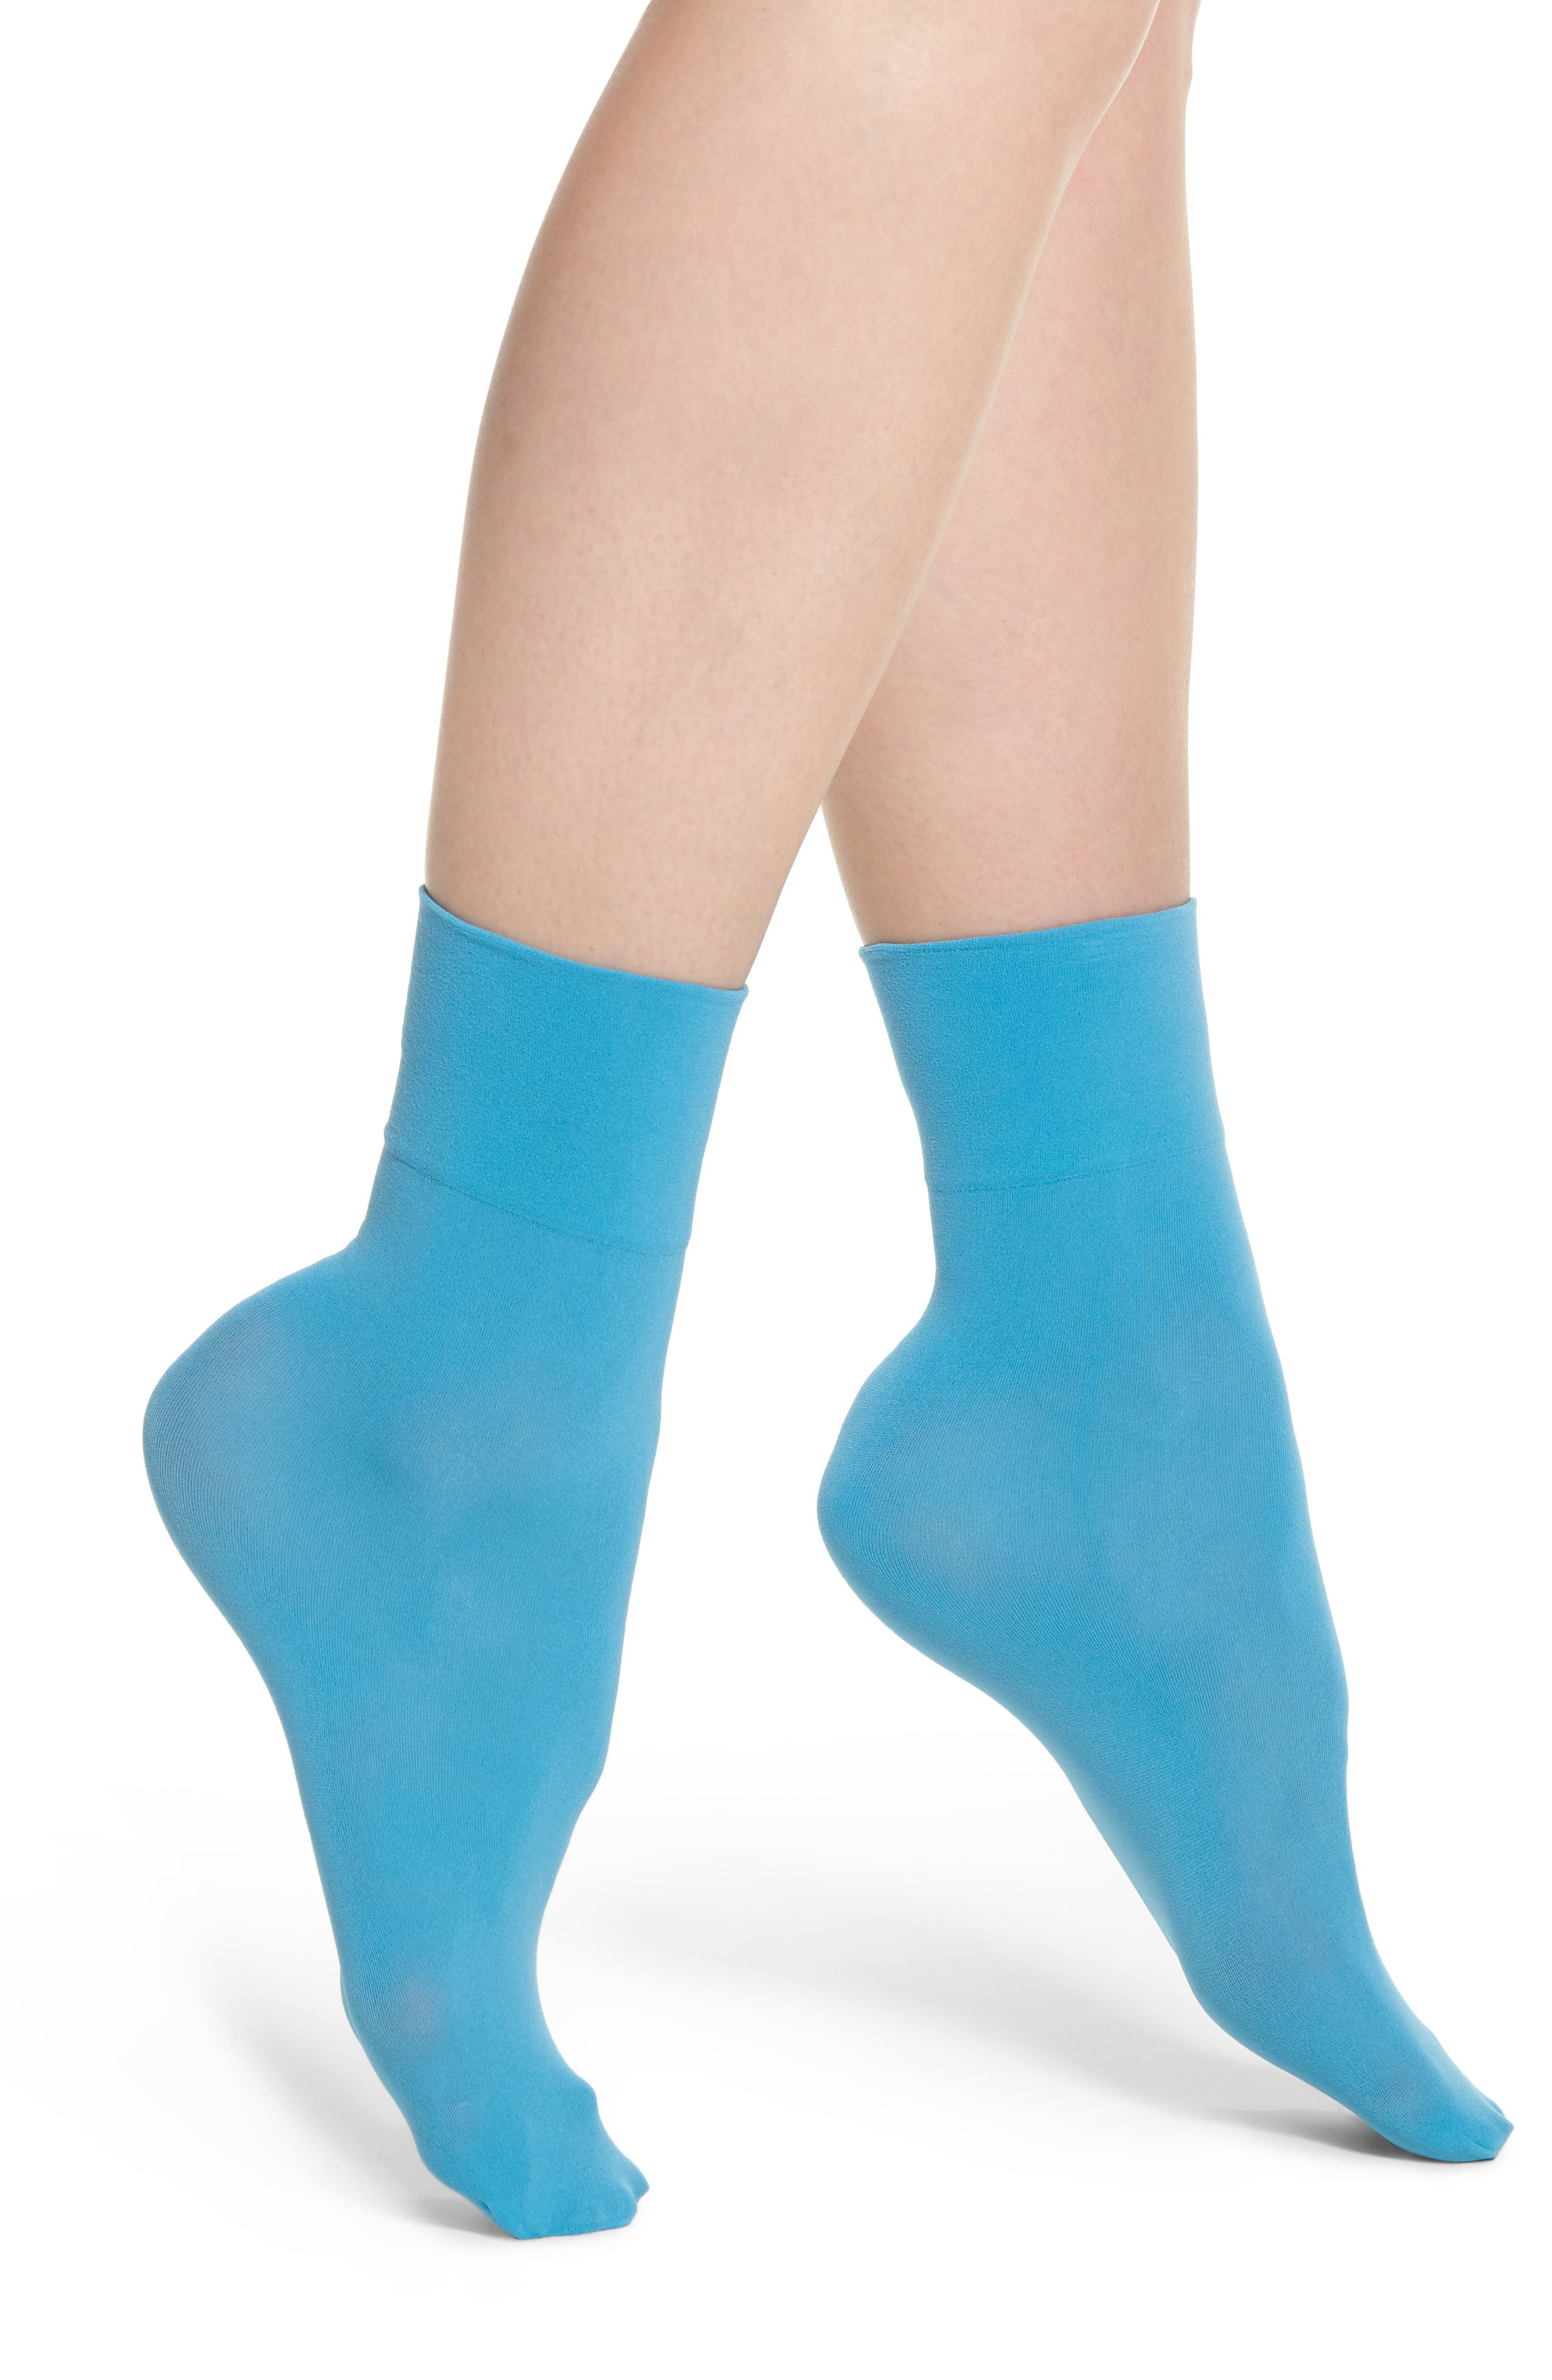 Opaque Anklet Socks,                             Main thumbnail 1, color,                             BLUE CHICK